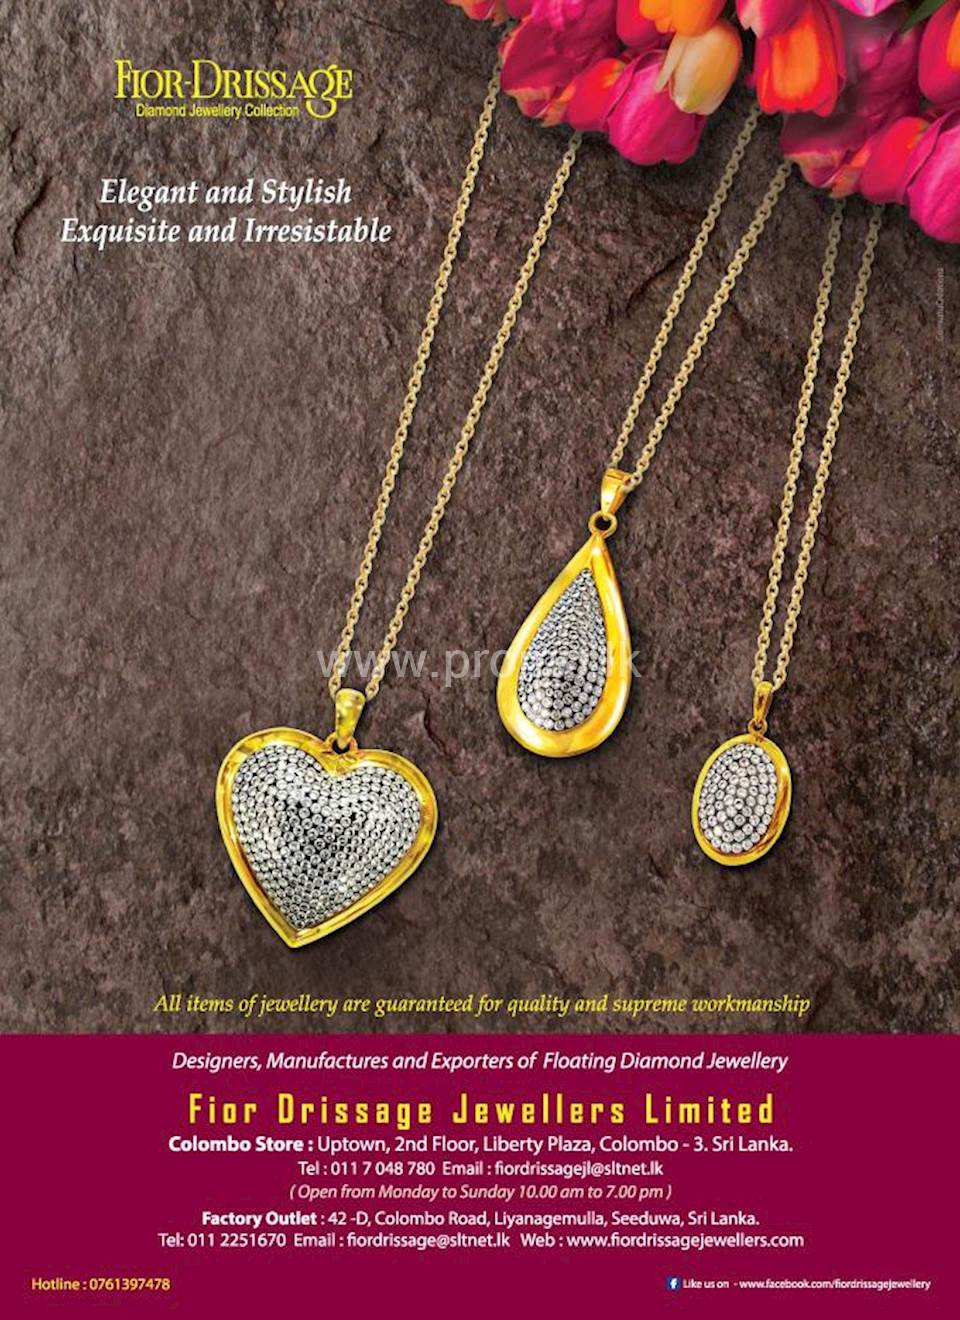 Special Avurudu Promotion at Fior Drissage Jewellery